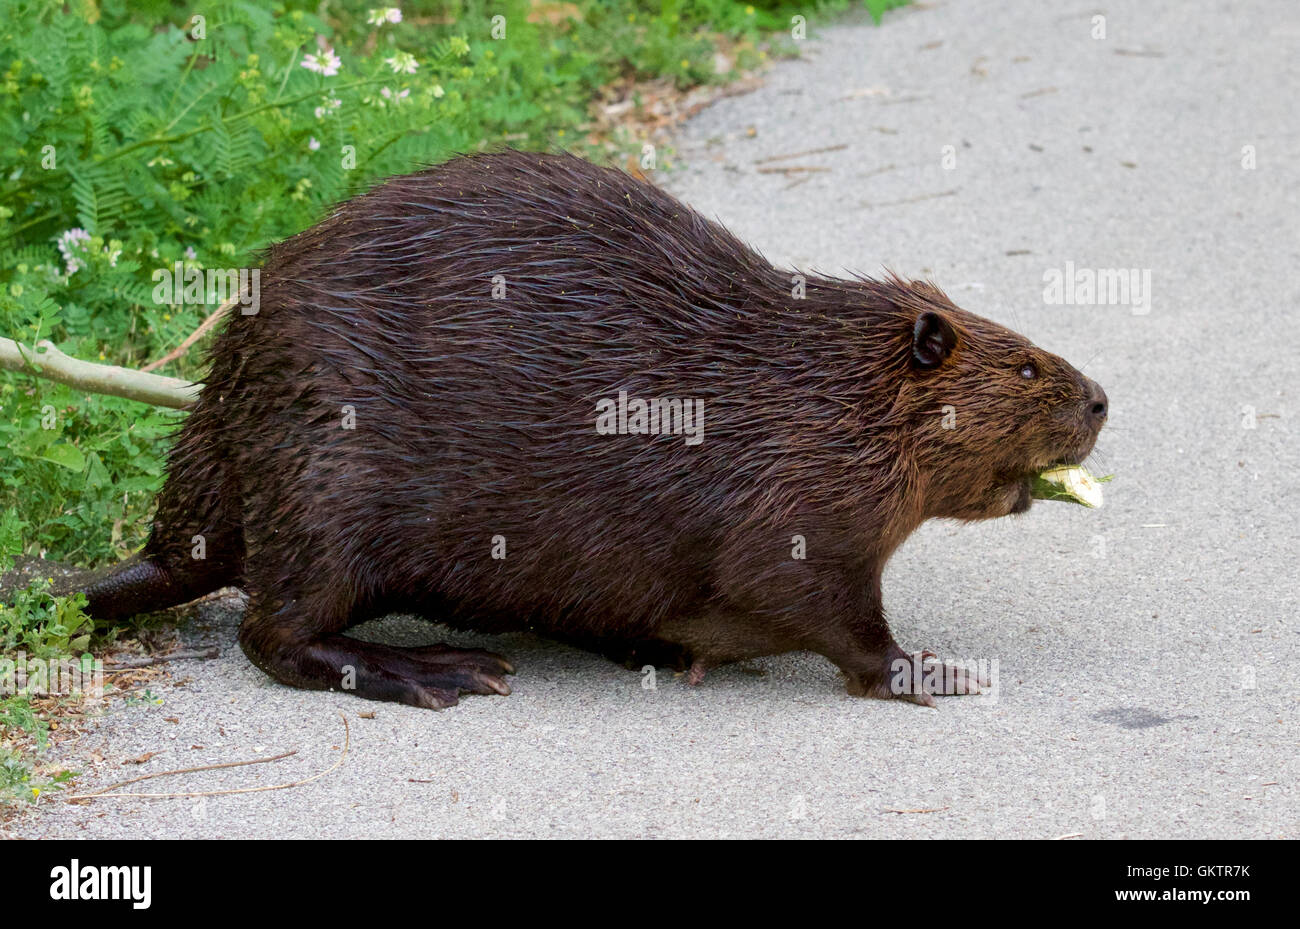 Isolated close image with a Canadian beaver on the road - Stock Image